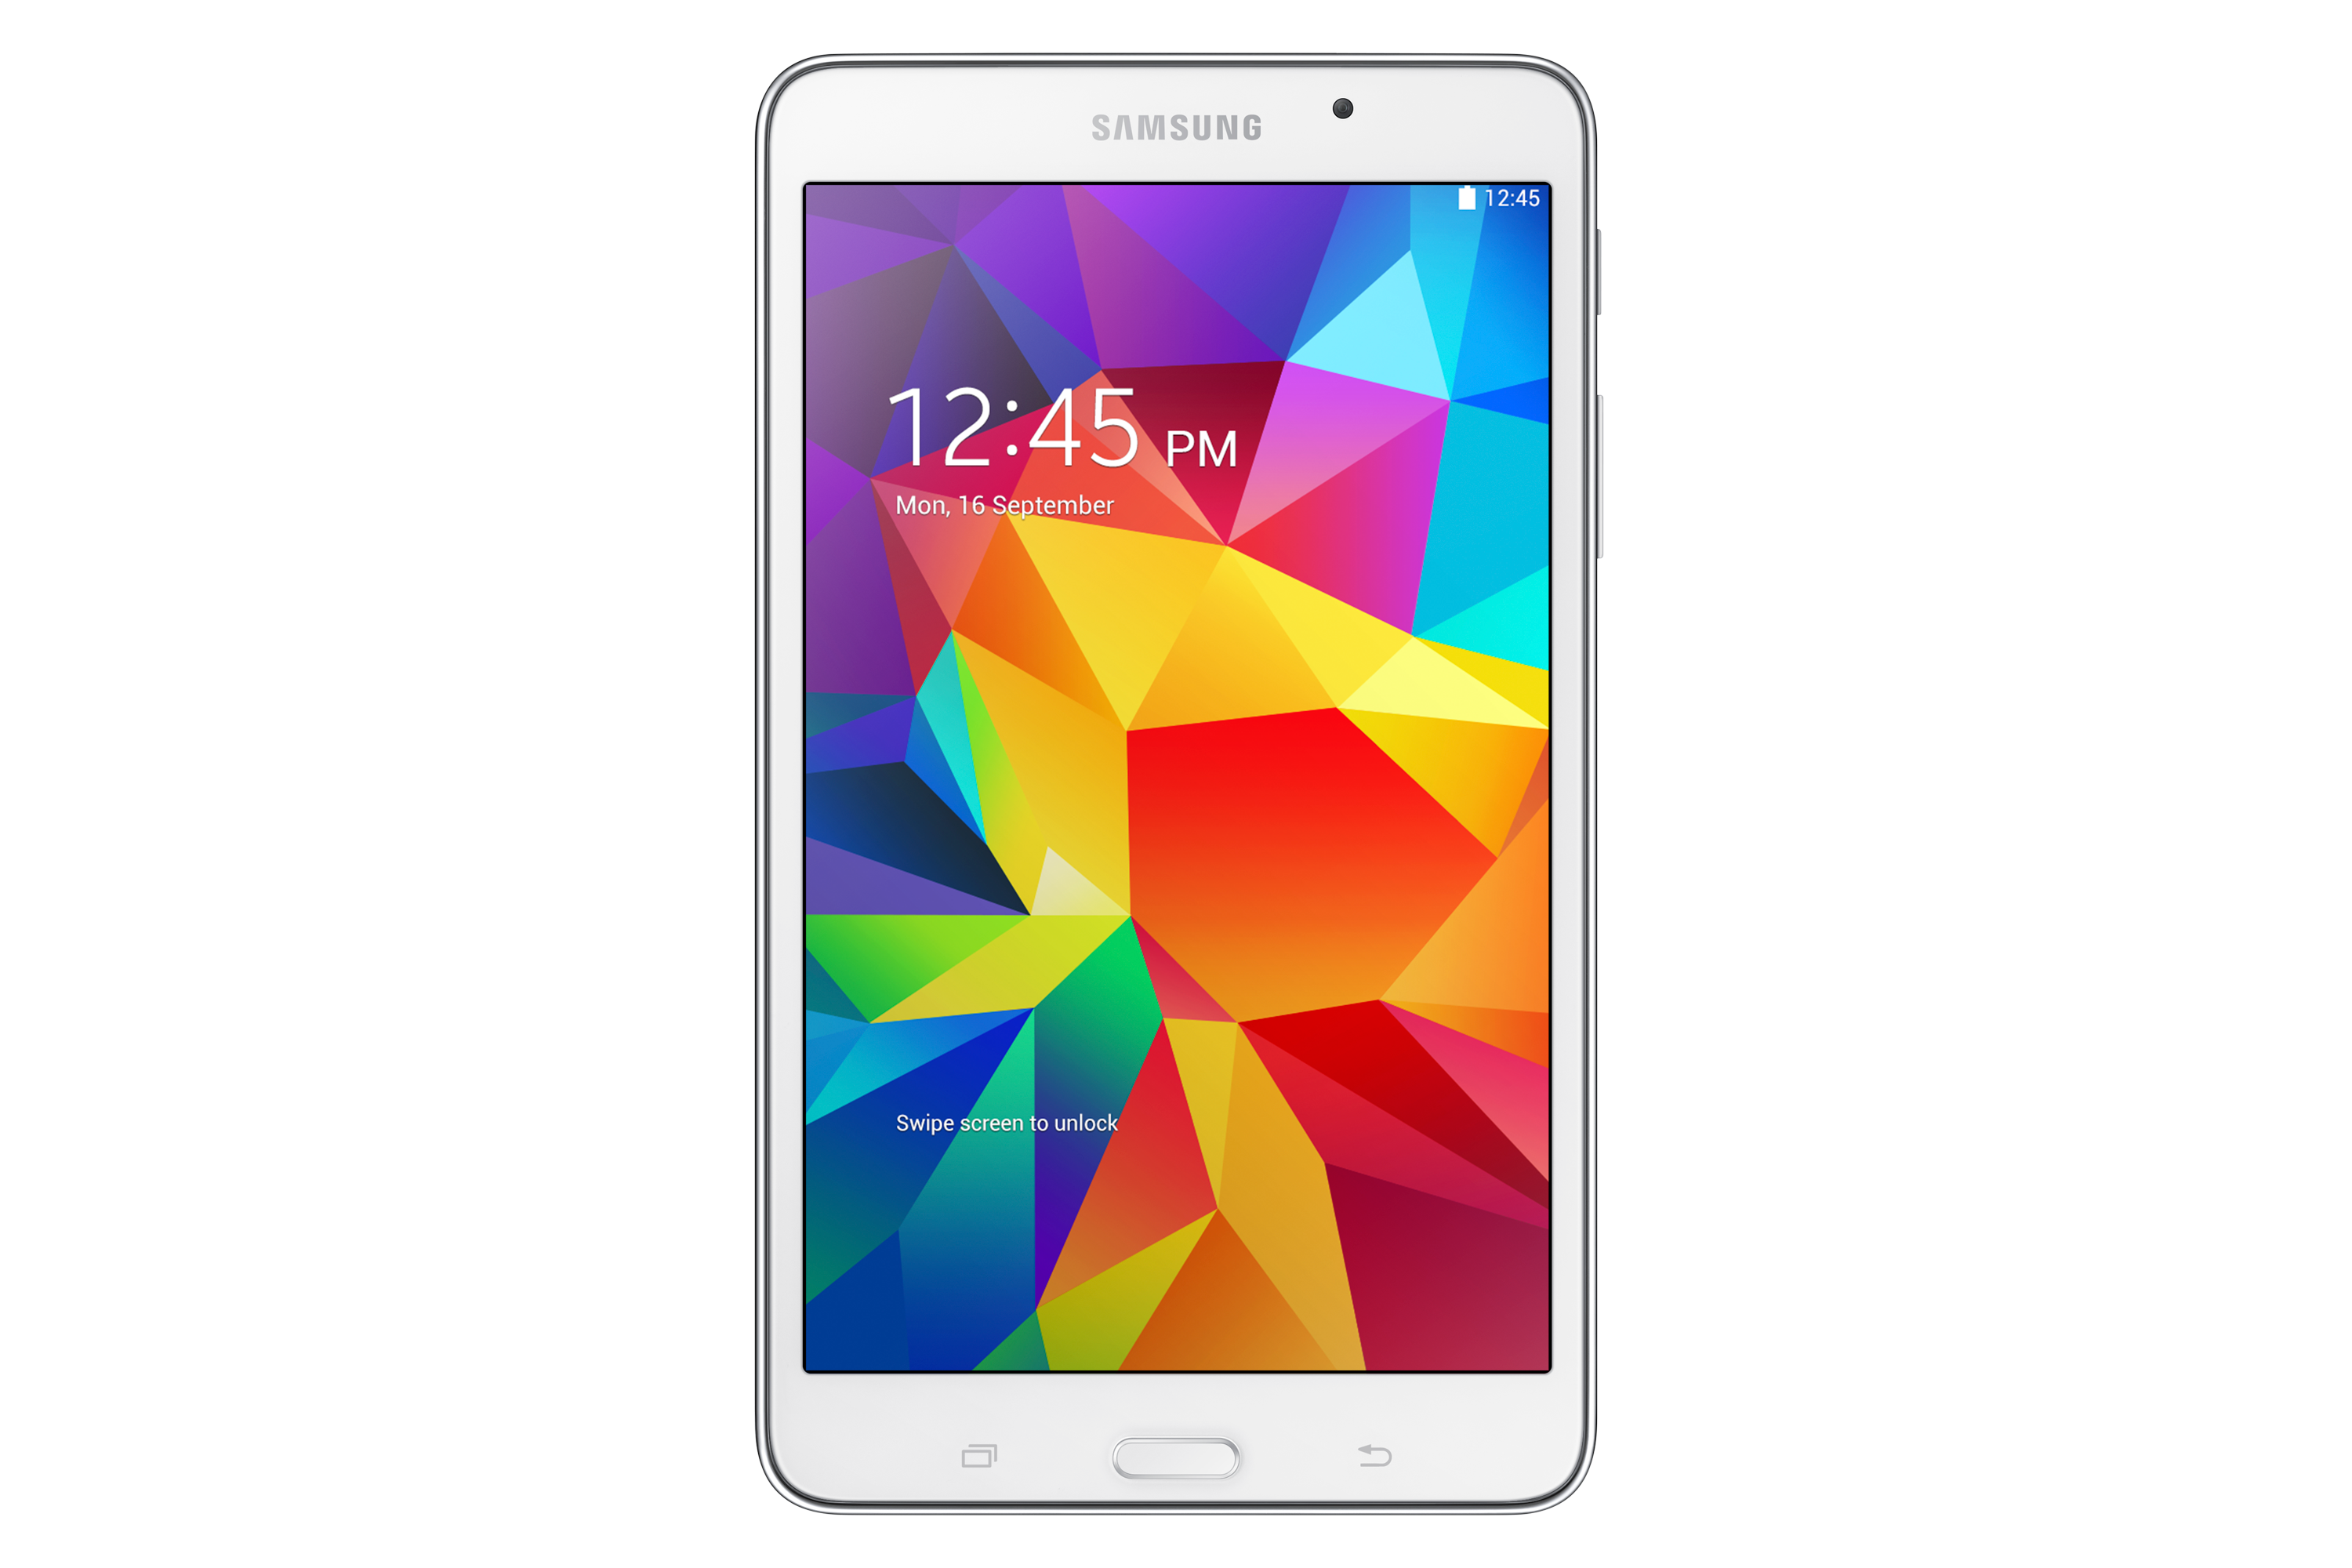 http://www.samsung.com/ro/consumer/mobile-devices/tablets/others/SM-T230NYKAROM